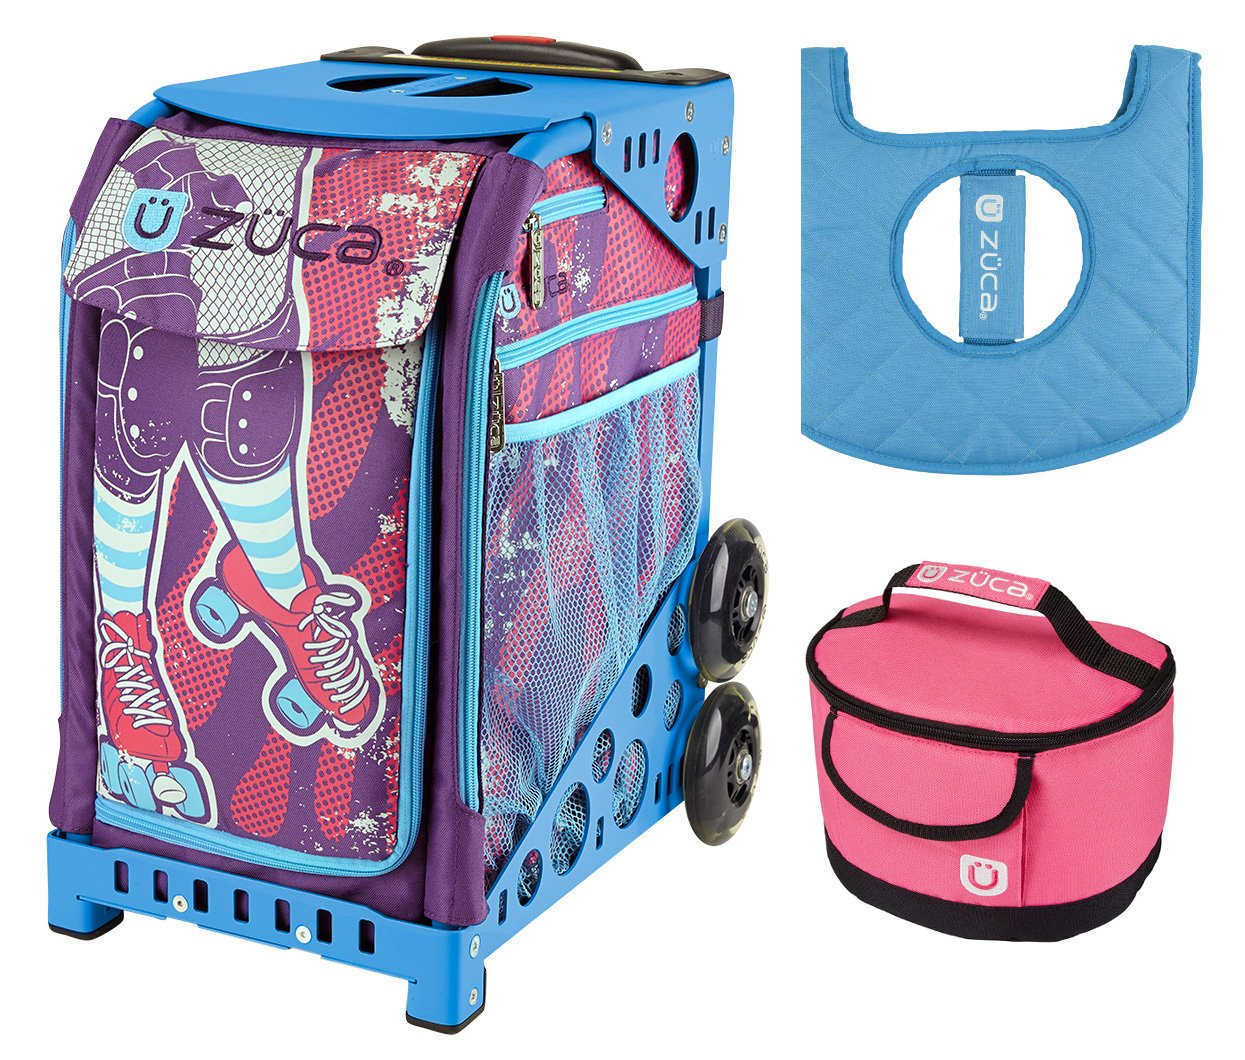 Zuca Sport Bag - Roller Girl with Gift Lunchbox and Seat Cover (Blue Frame)